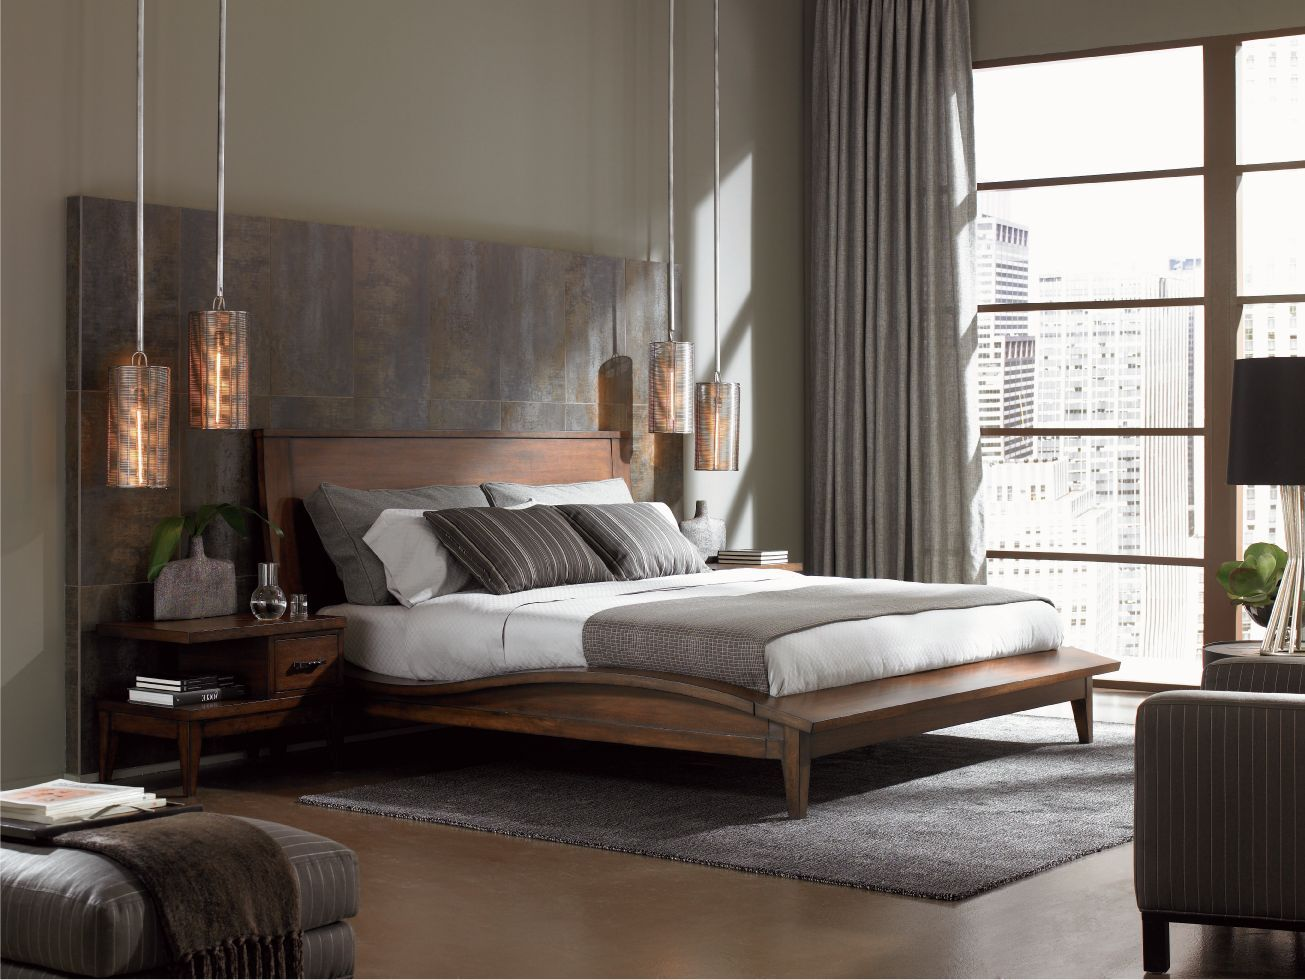 Wonderful Bedroom: Bedroom Hanging Lamps And Great Bedside Lights Trends With Bedroom  Size Of Double Bed In Meters Gray Brown Nights / Hanging Bedside Lights  Bedroom ...